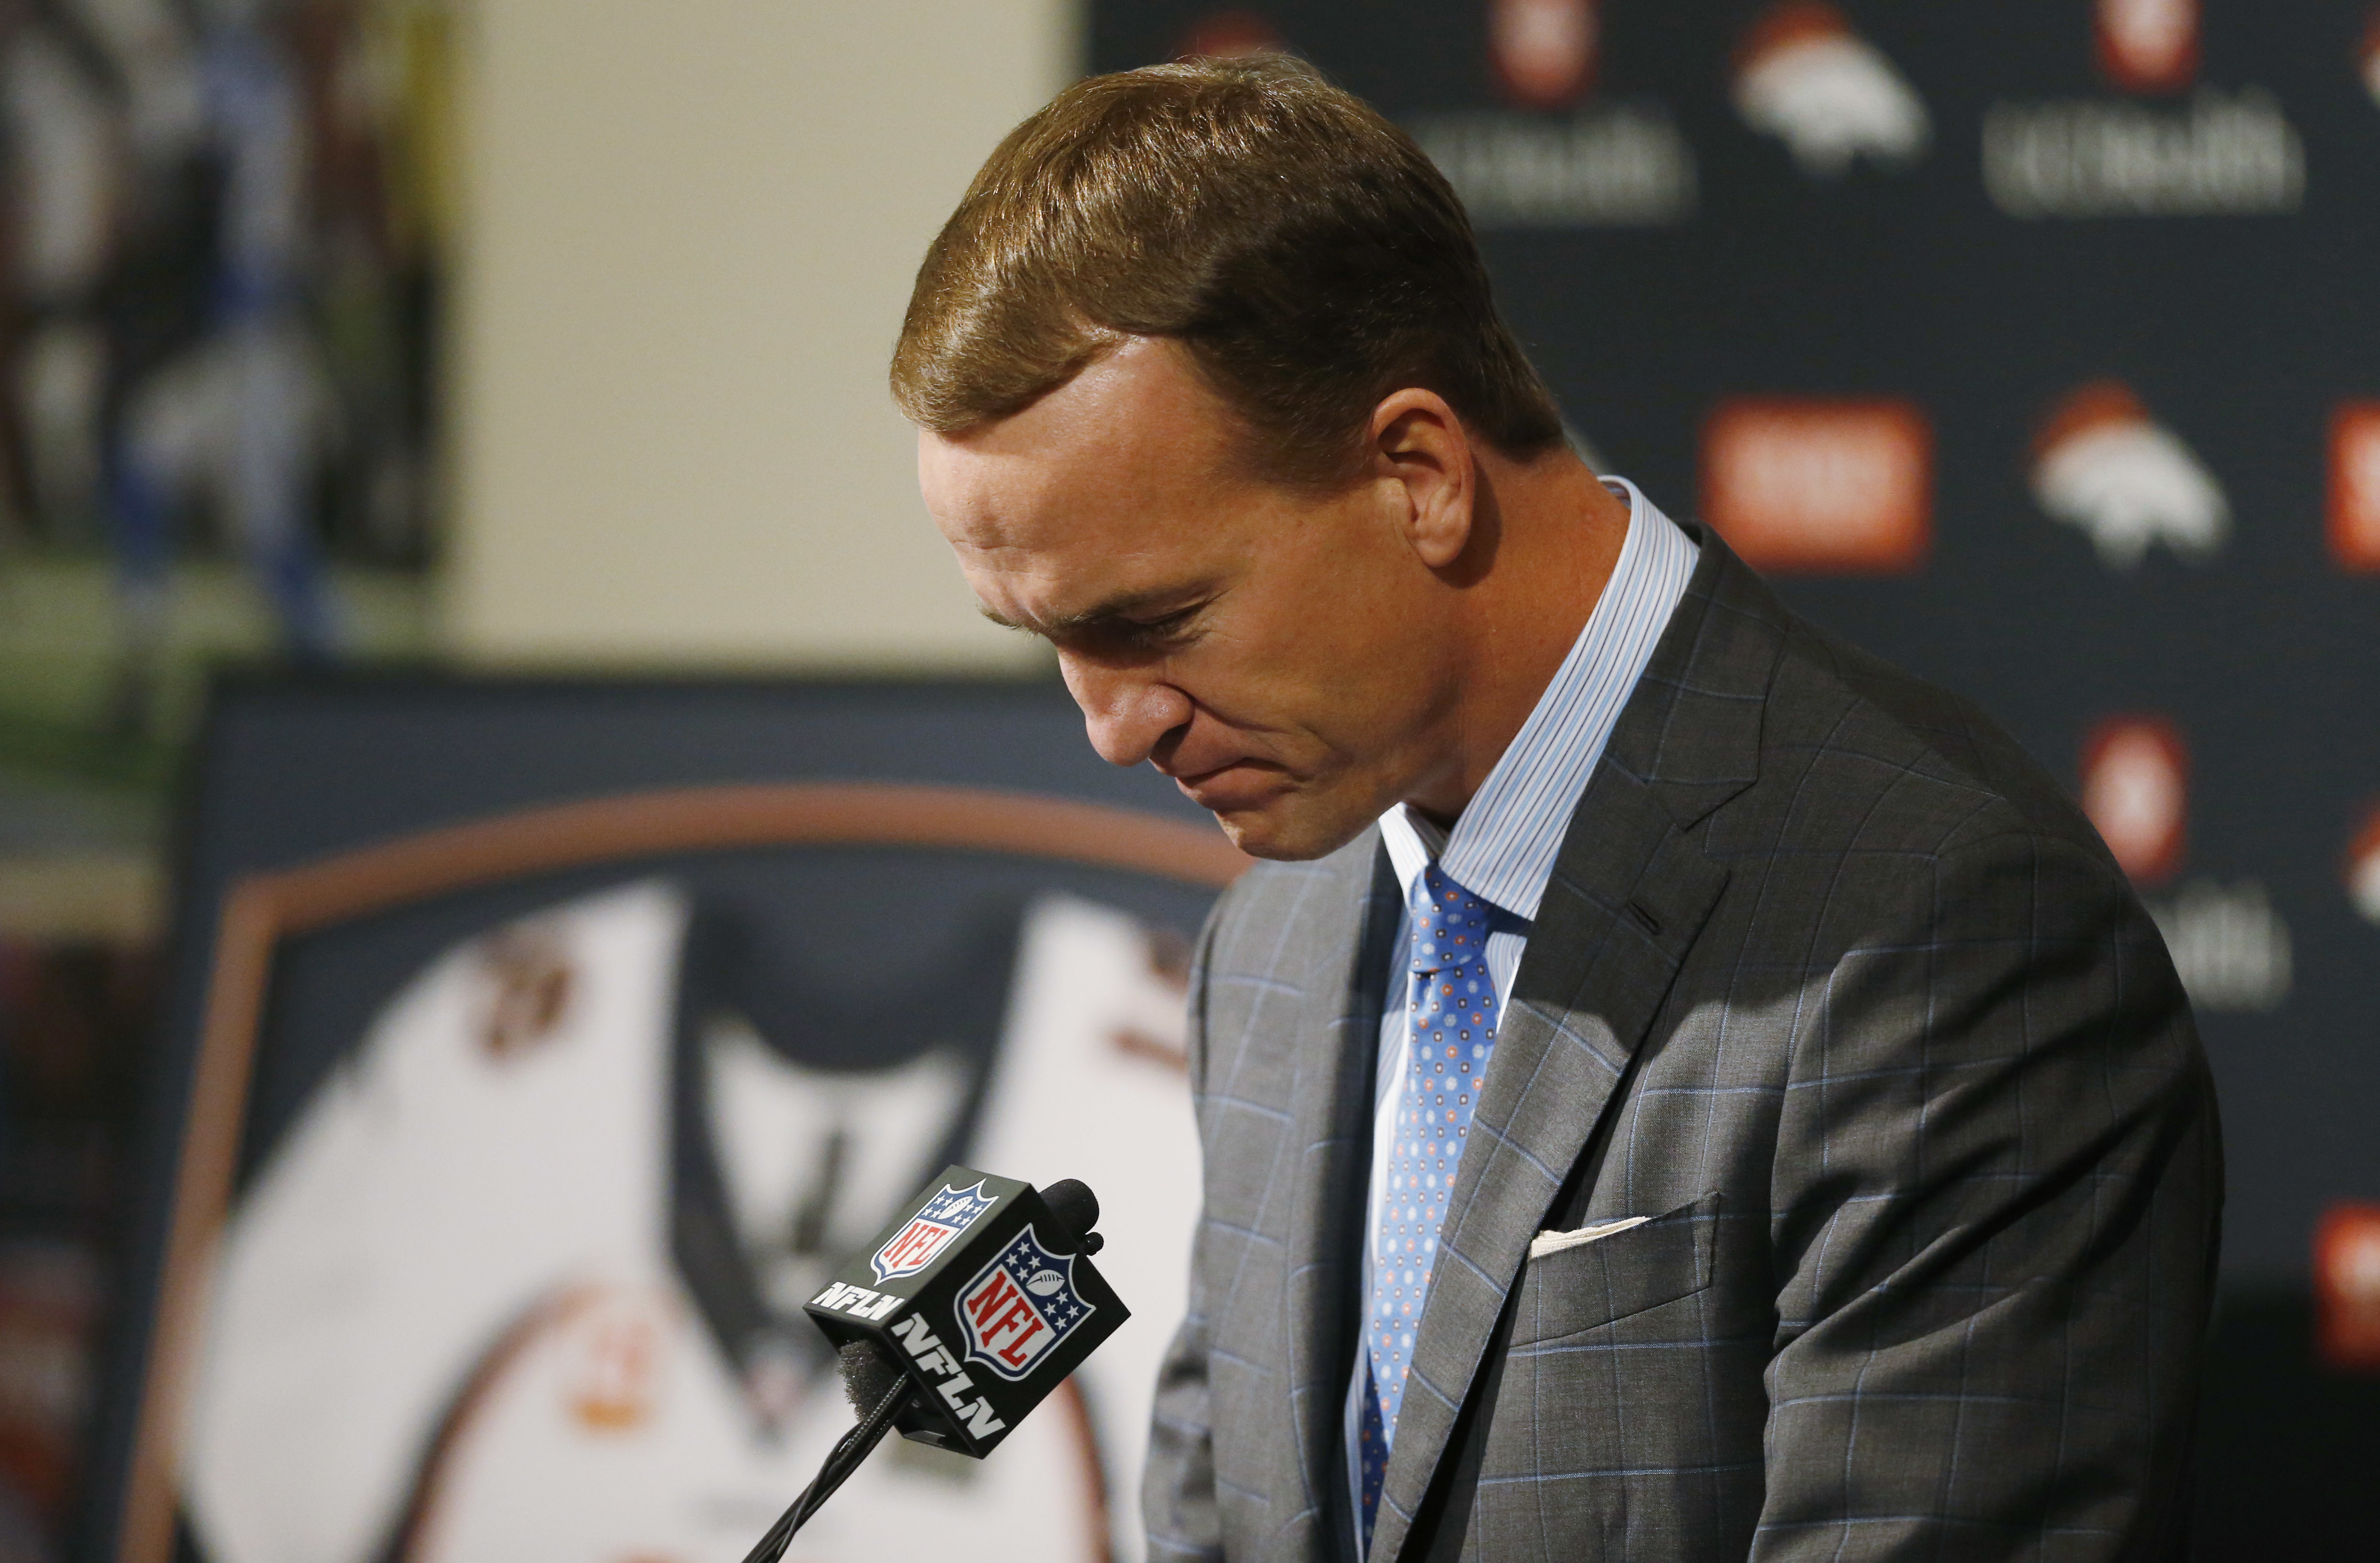 Denver Broncos quarterback Peyton Manning struggles to talk during his retirement announcement at team headquarters Monday, March 7, 2016, in Englewood, Colo. Manning, who has been in the NFL for the past 18 years, is retiring after winning five MVP troph